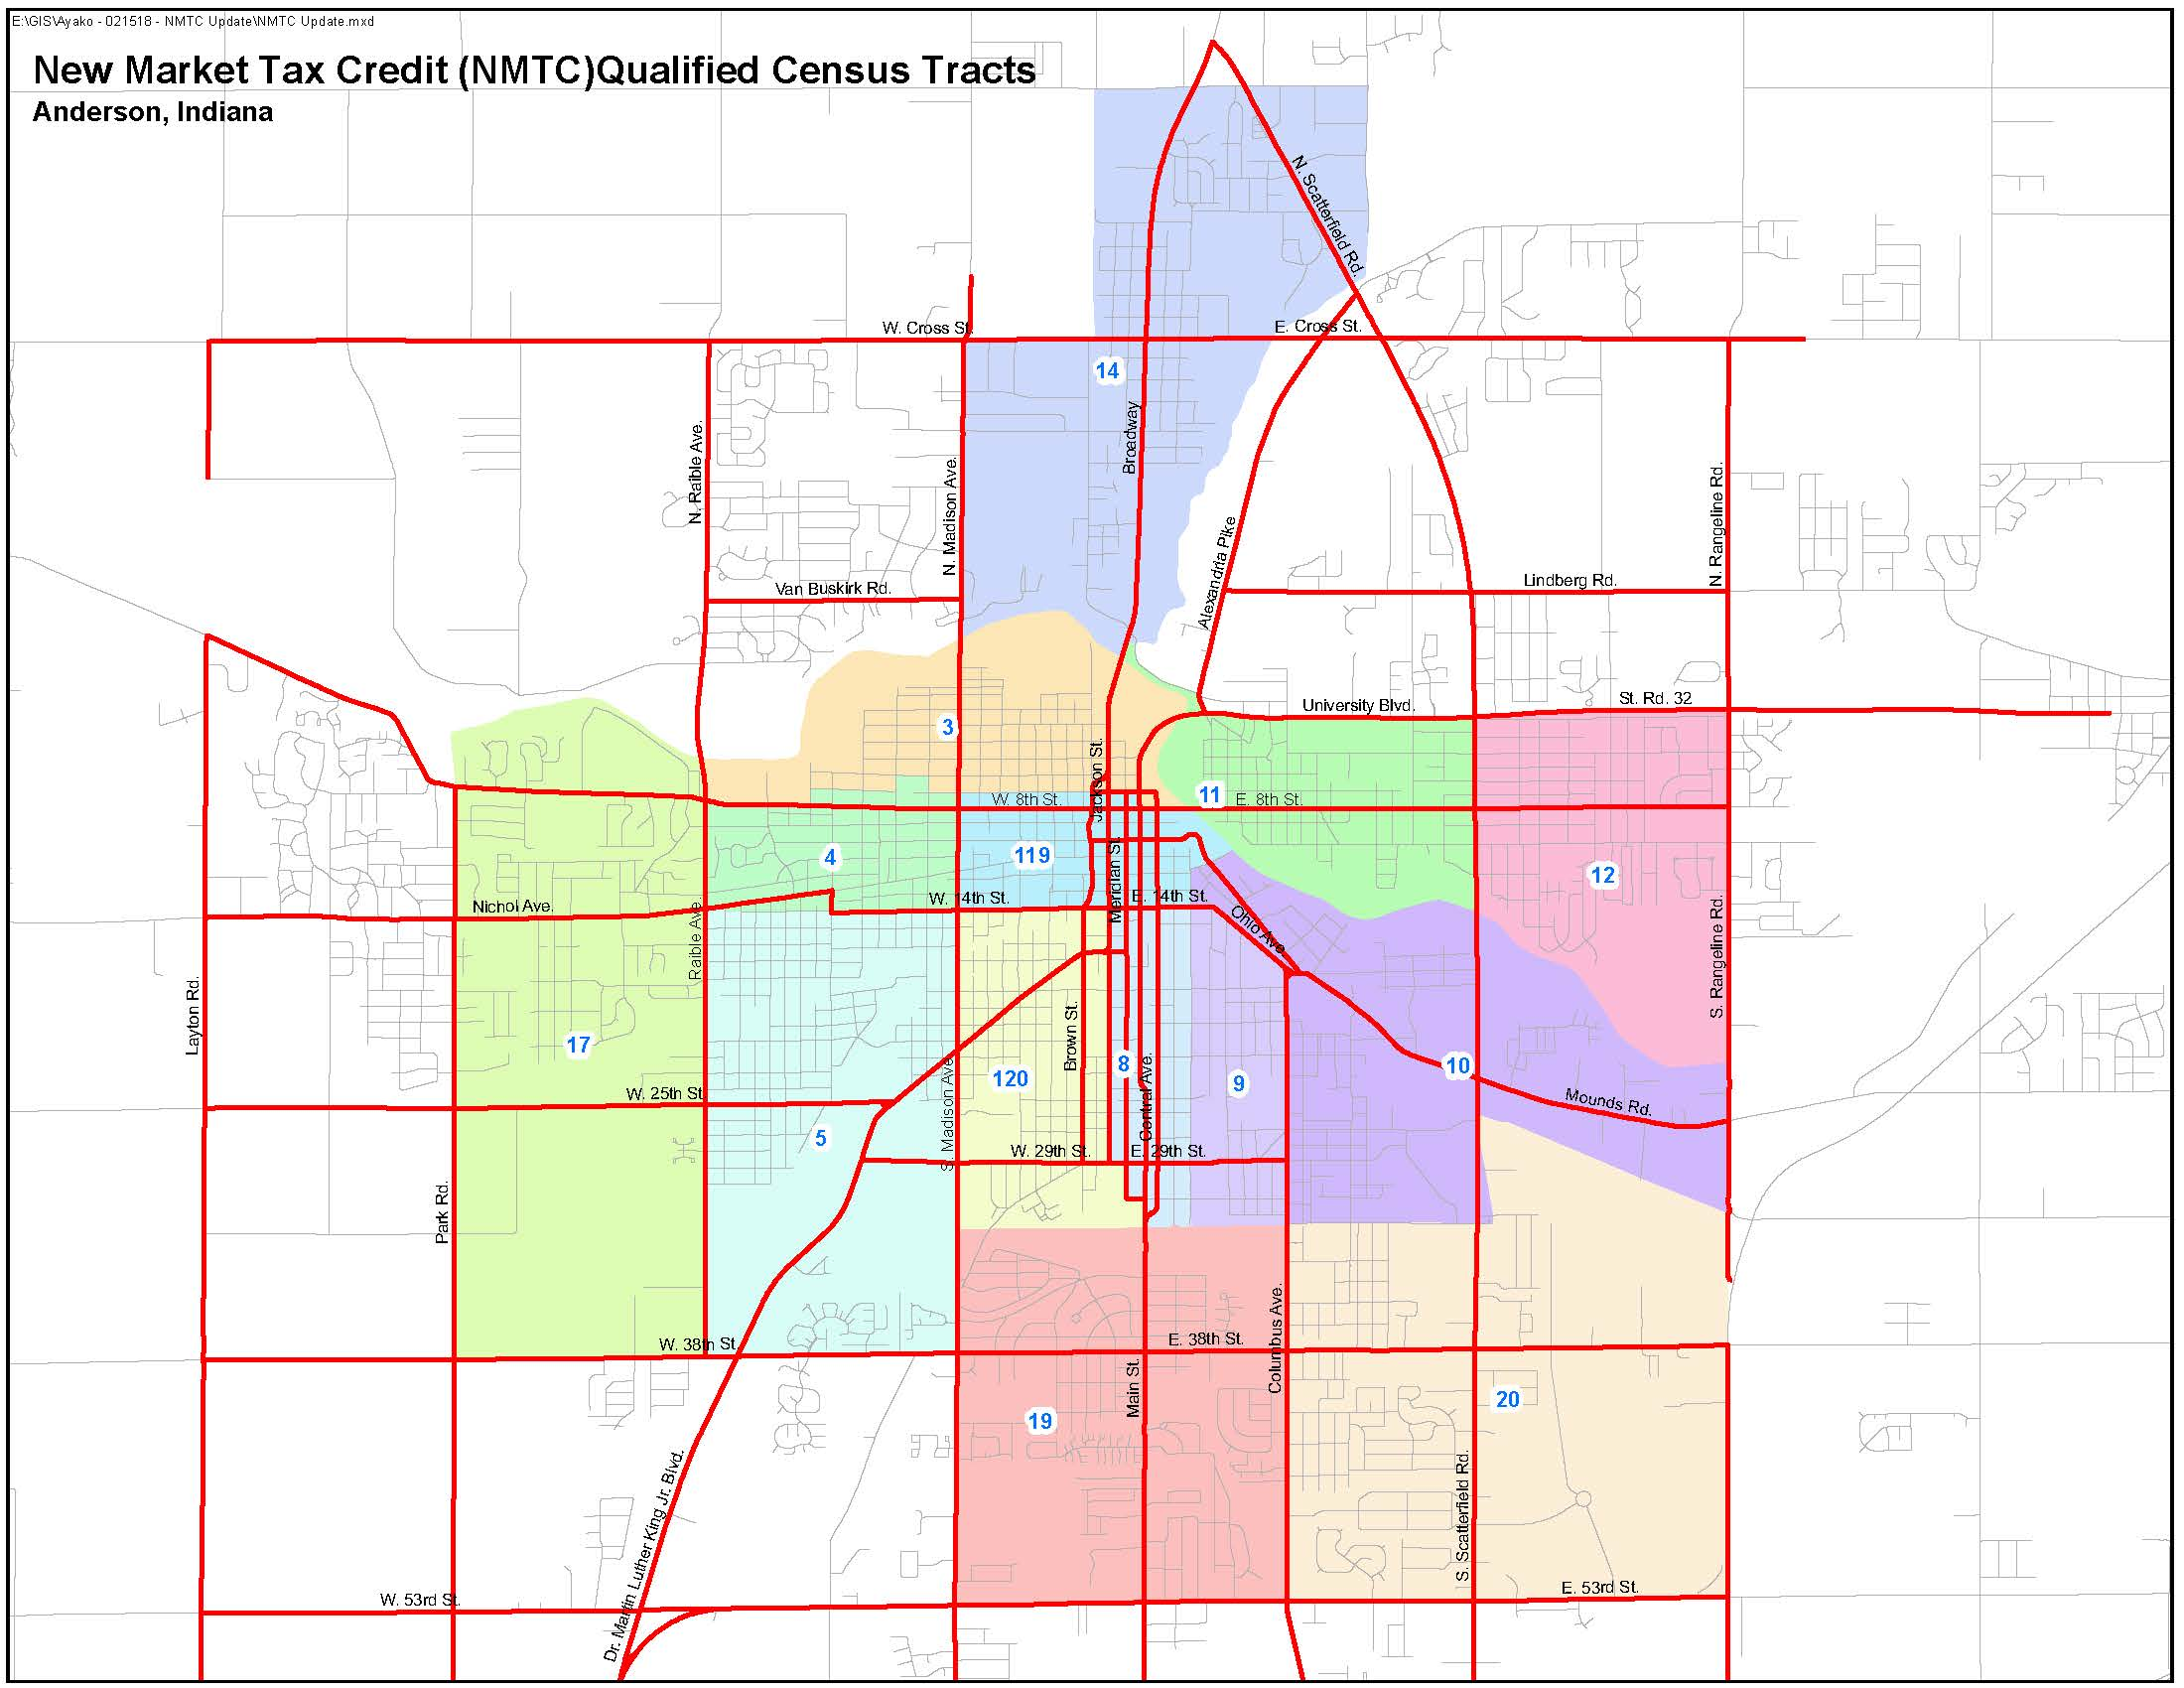 New Market Tax Credit Qualified Census Tracts